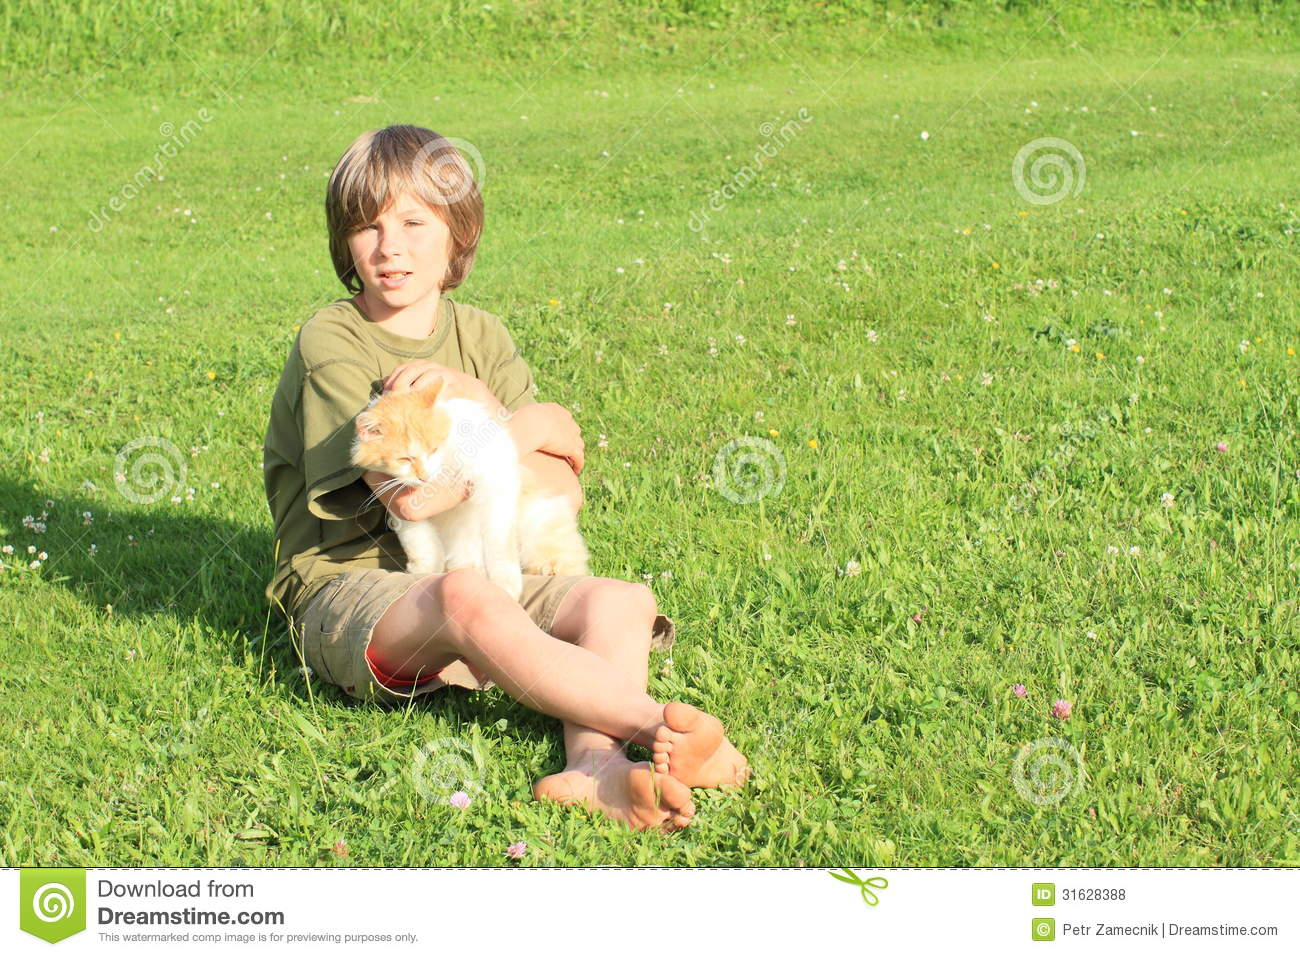 https://thumbs.dreamstime.com/z/little-boy-playing-cat-sitting-barefoot-orrange-white-meadow-31628388.jpg